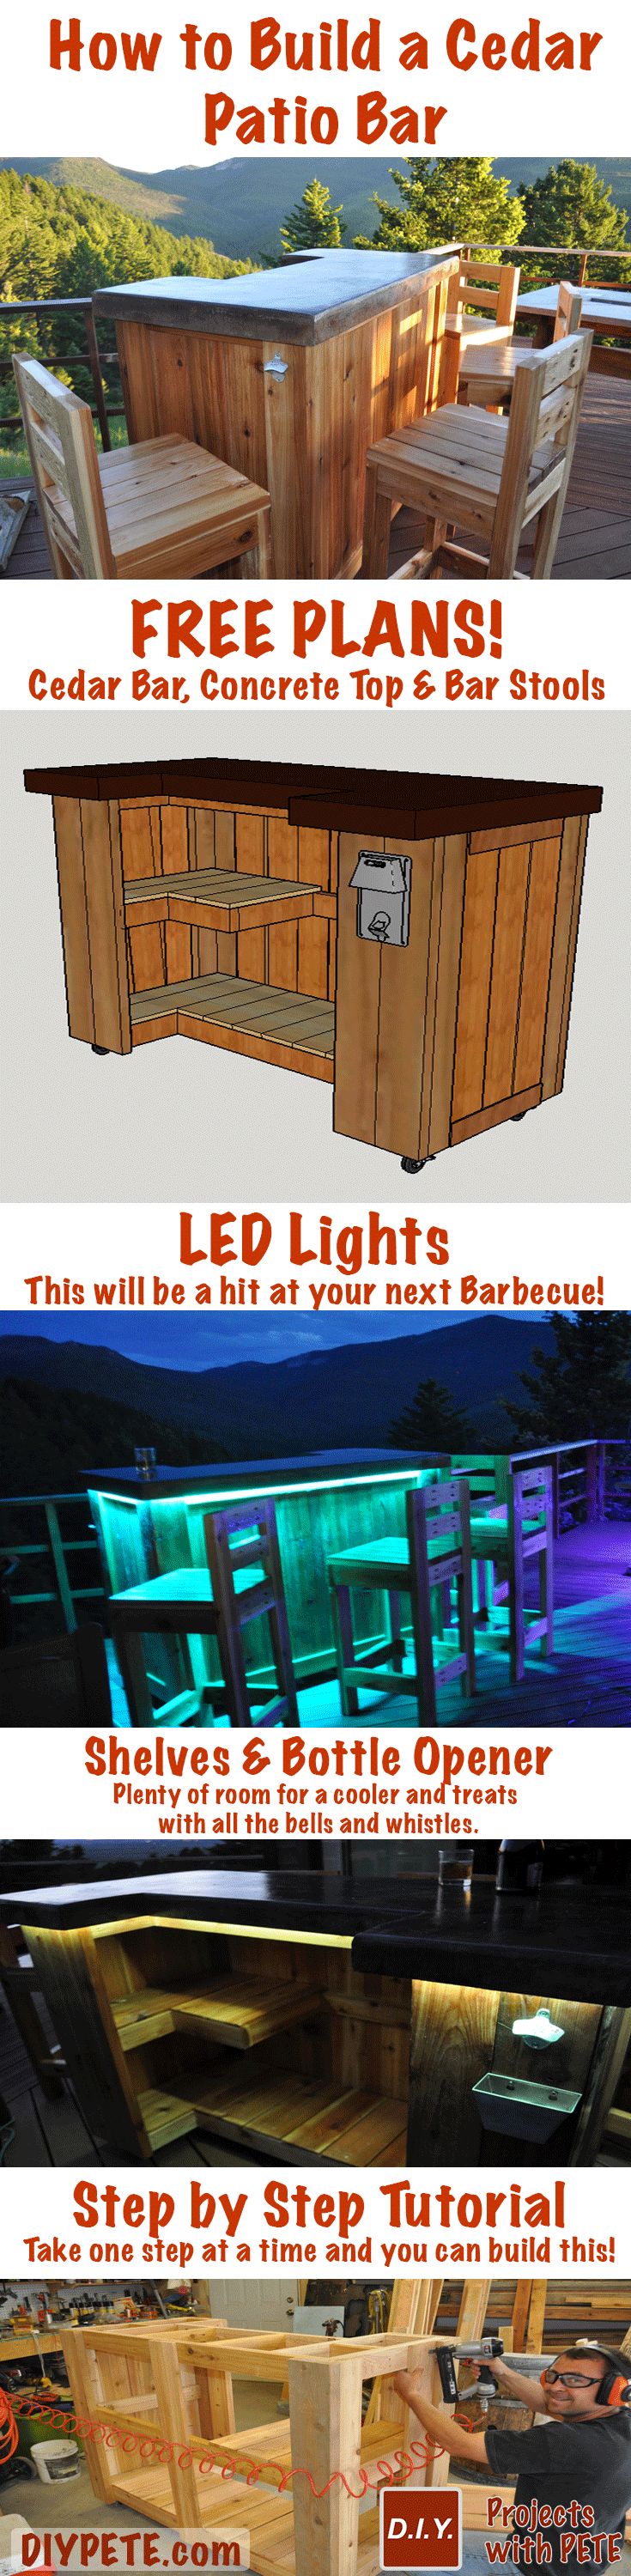 Learn how to build a Patio Bar! Free Plans, Video Tutorial ...